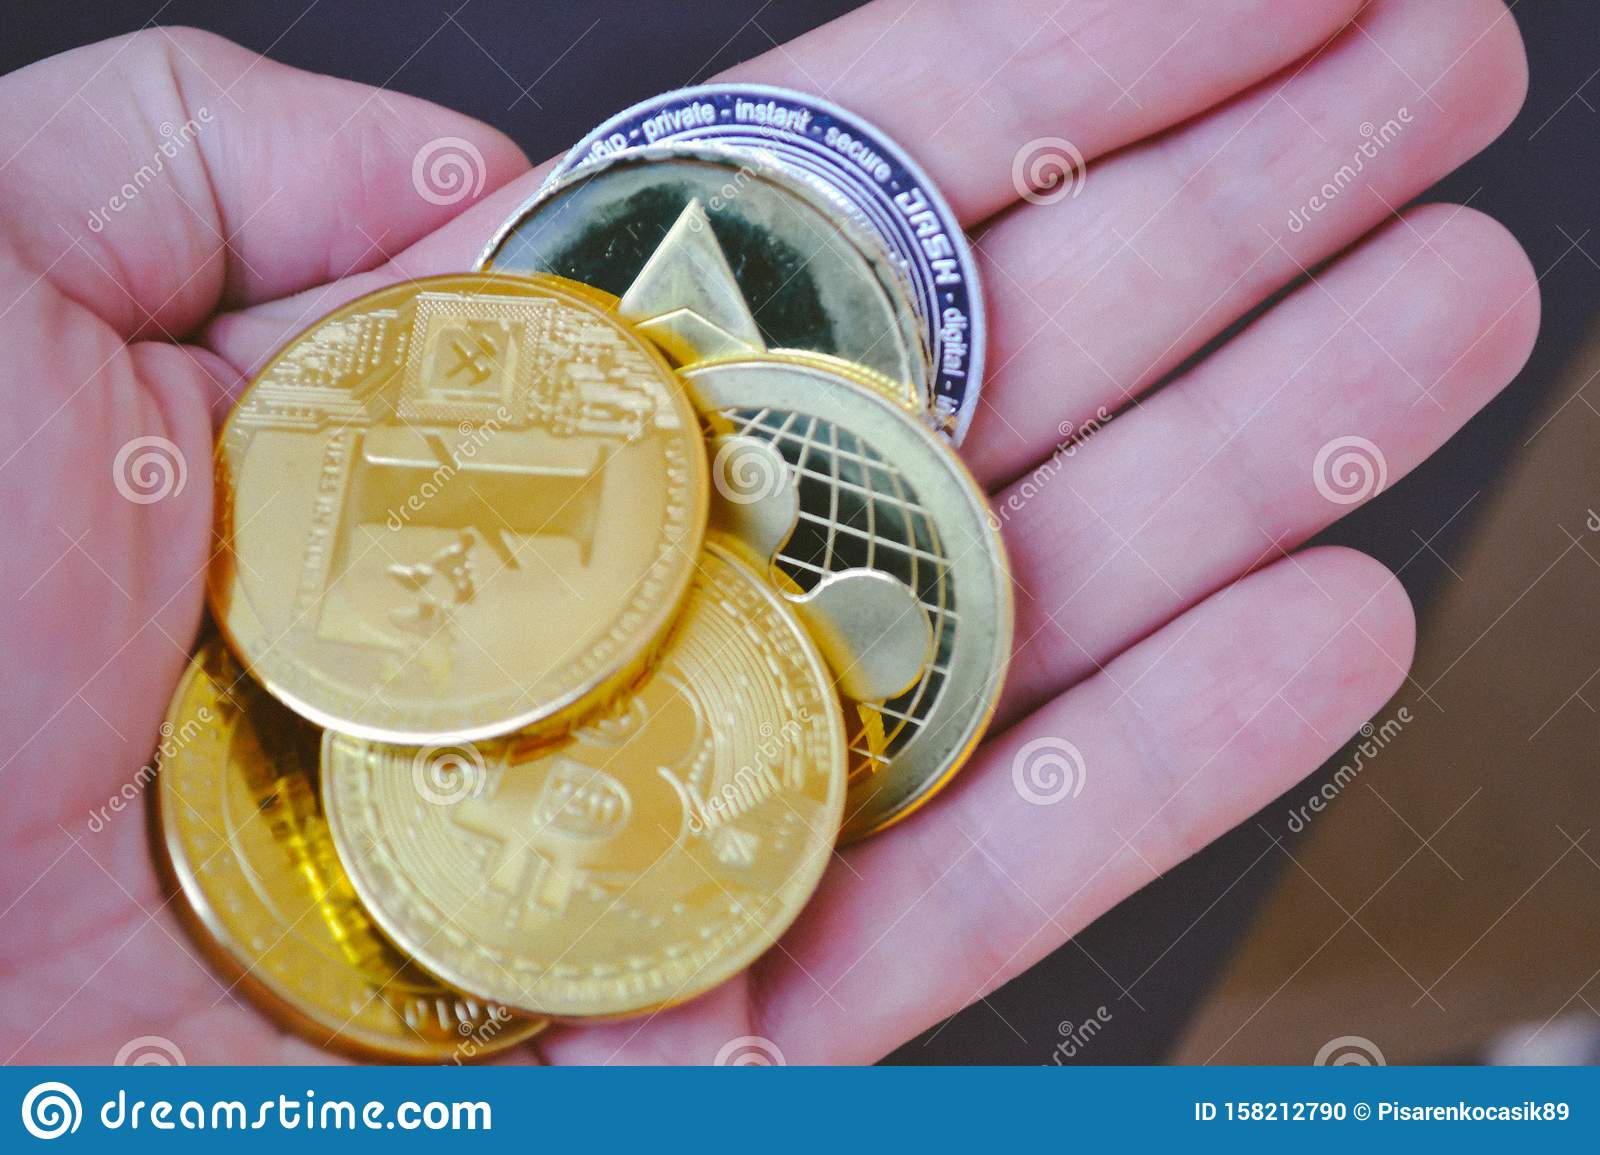 World coin crypto currency 5 bitcoins kaufen in english